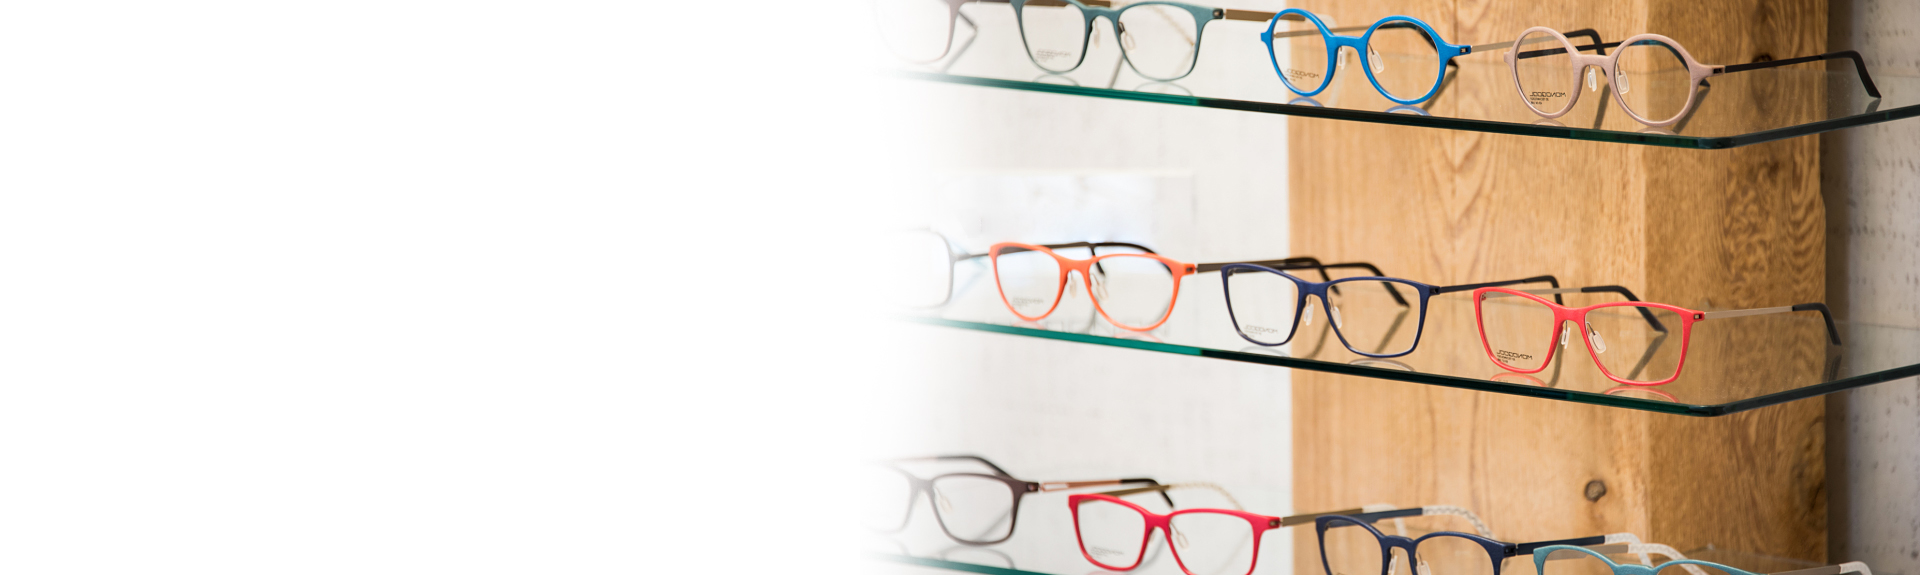 Optometry Clinic in Calgary Generates More Than 100 Patients a Month From Online Marketing.